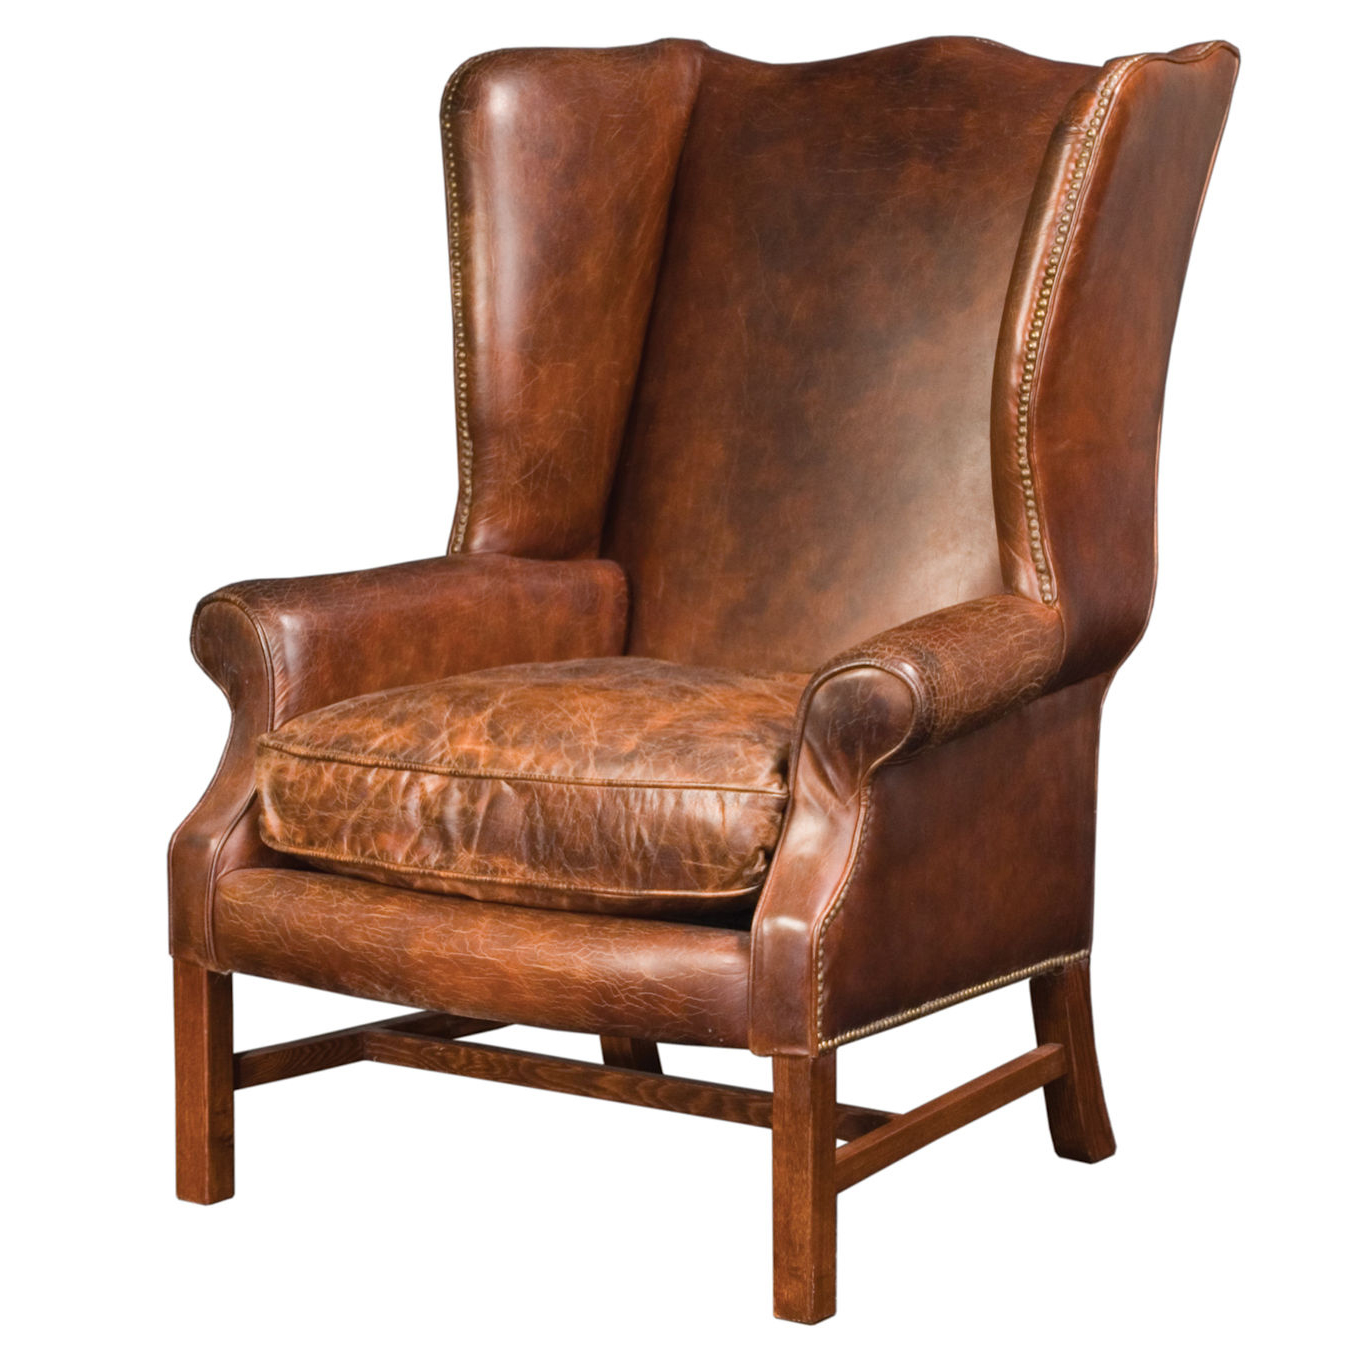 Lounge Sessel Chesterfield Chesterfield Sessel Lounge Ideen Top